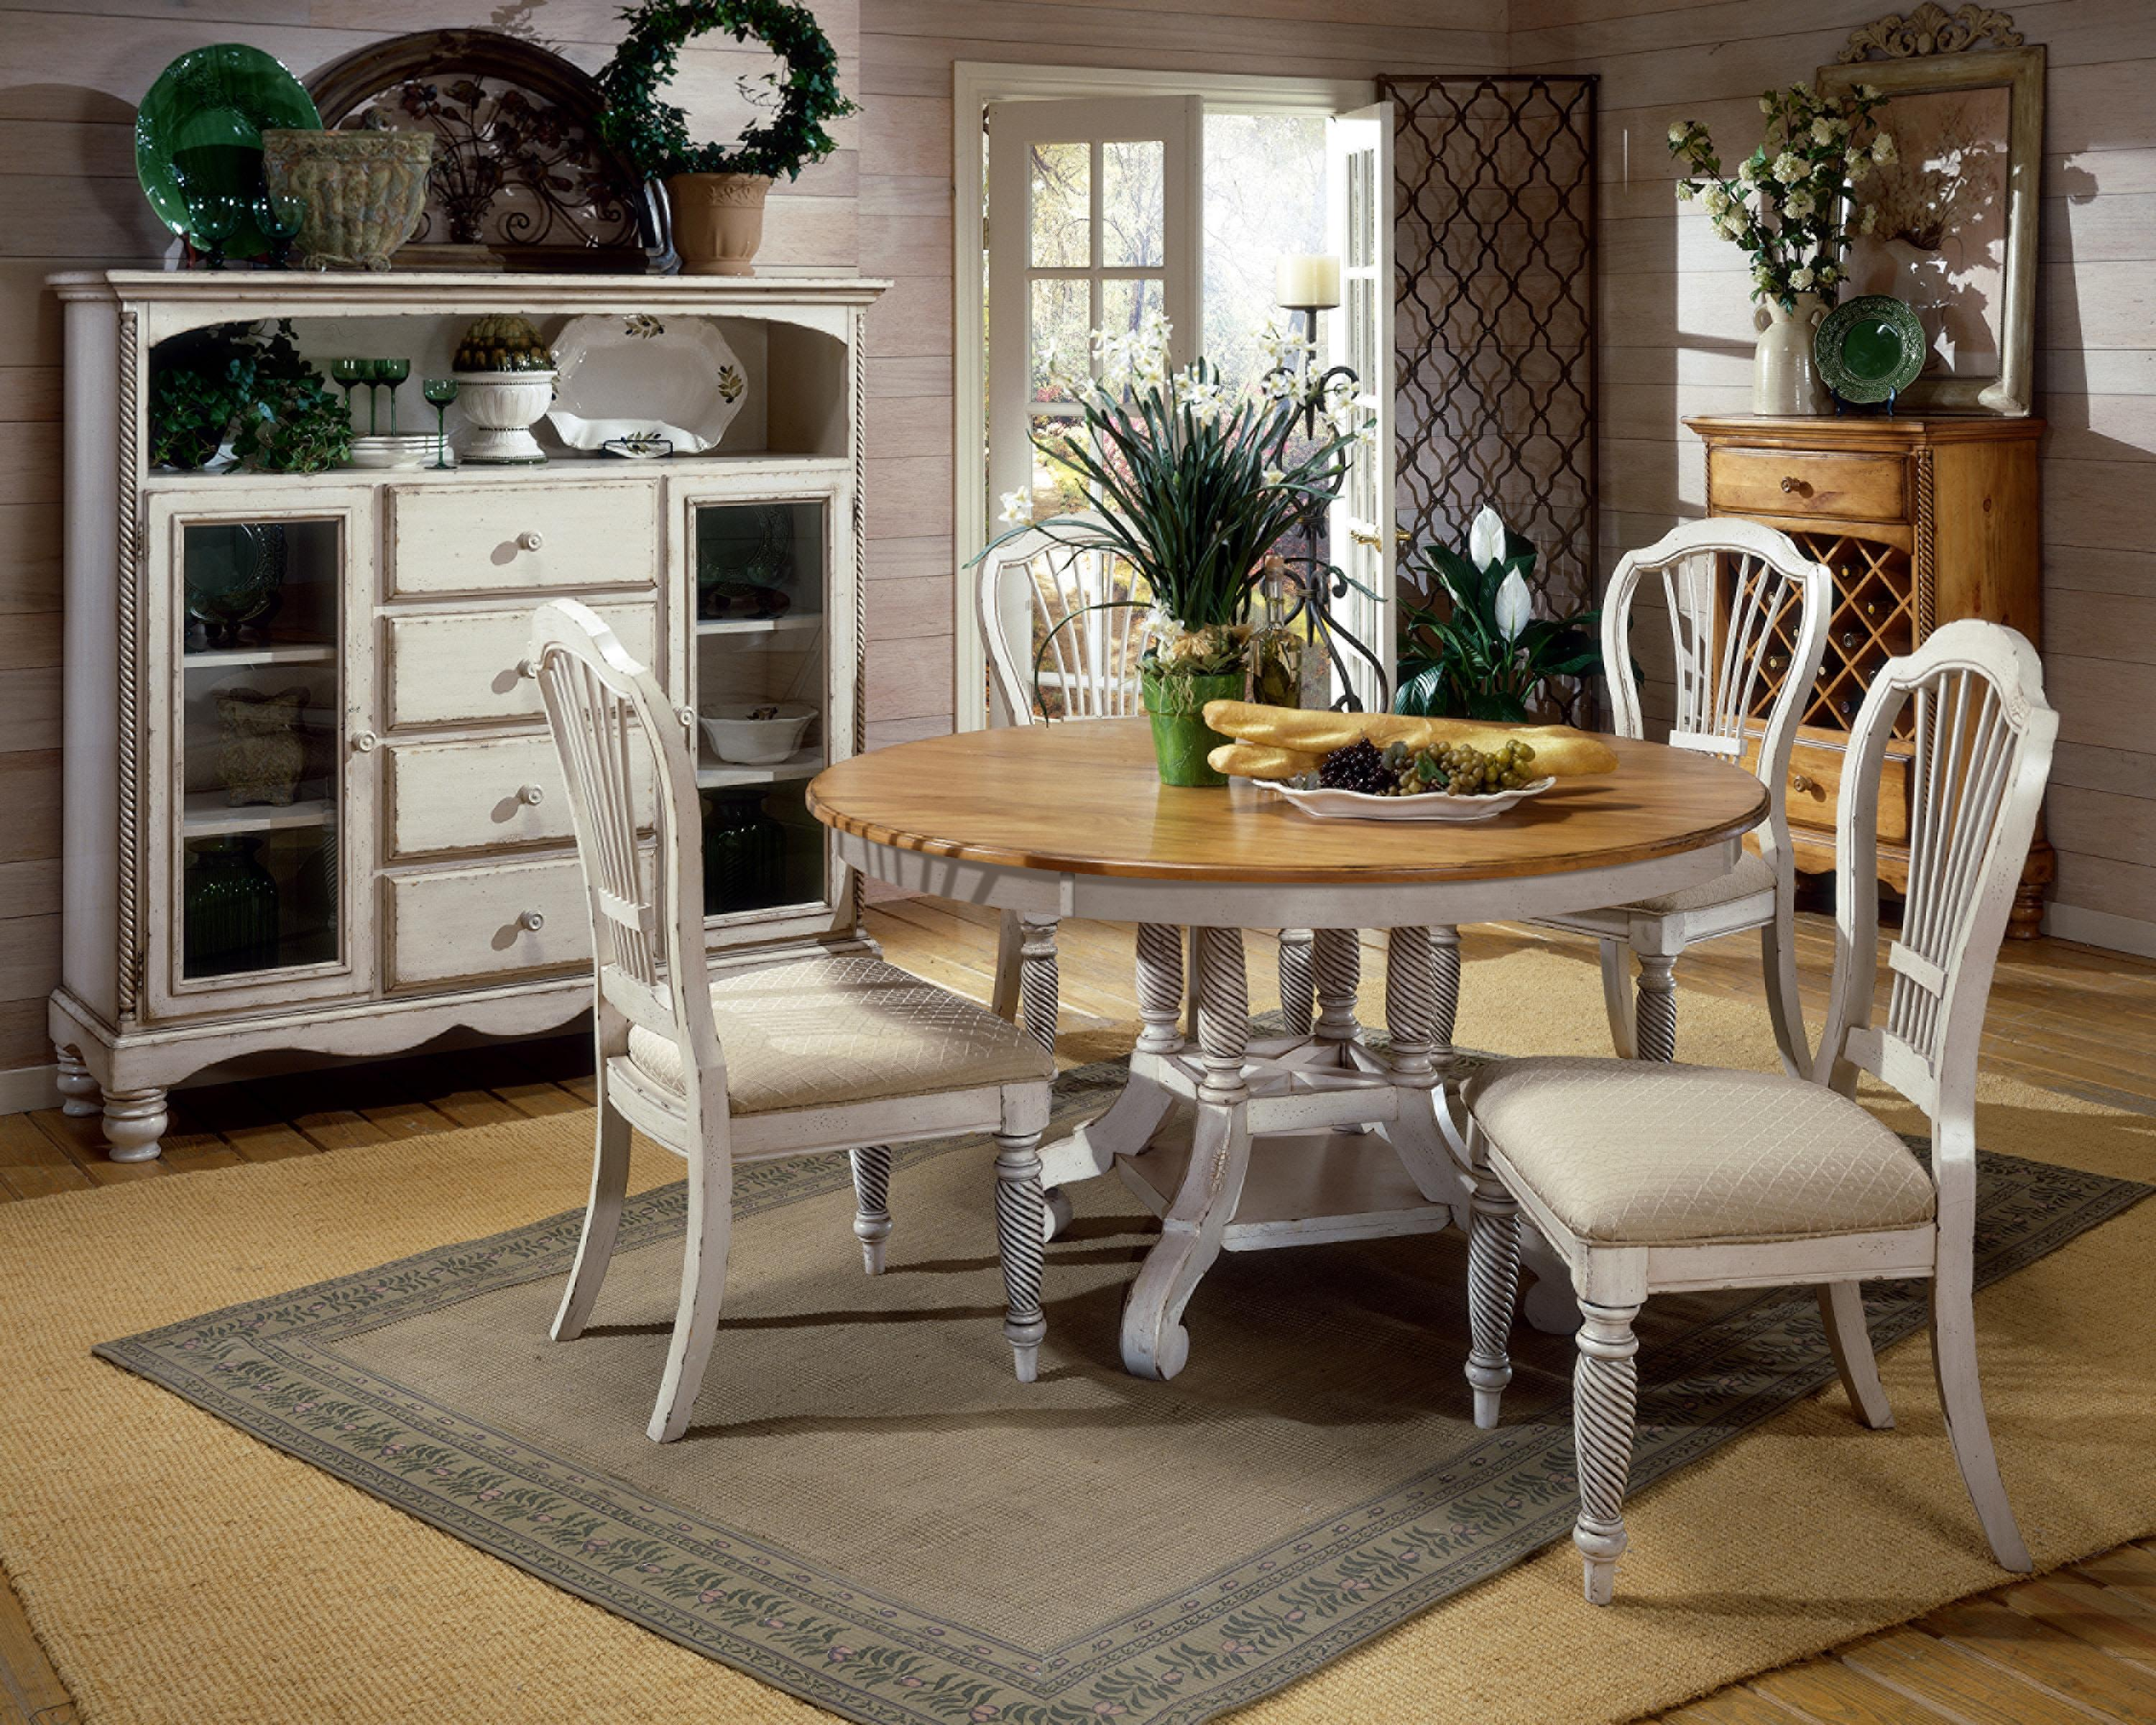 Round White Kitchen Table With Four Chairs Grey Carpet Cabinet With Drawers : white round dining room table sets - pezcame.com